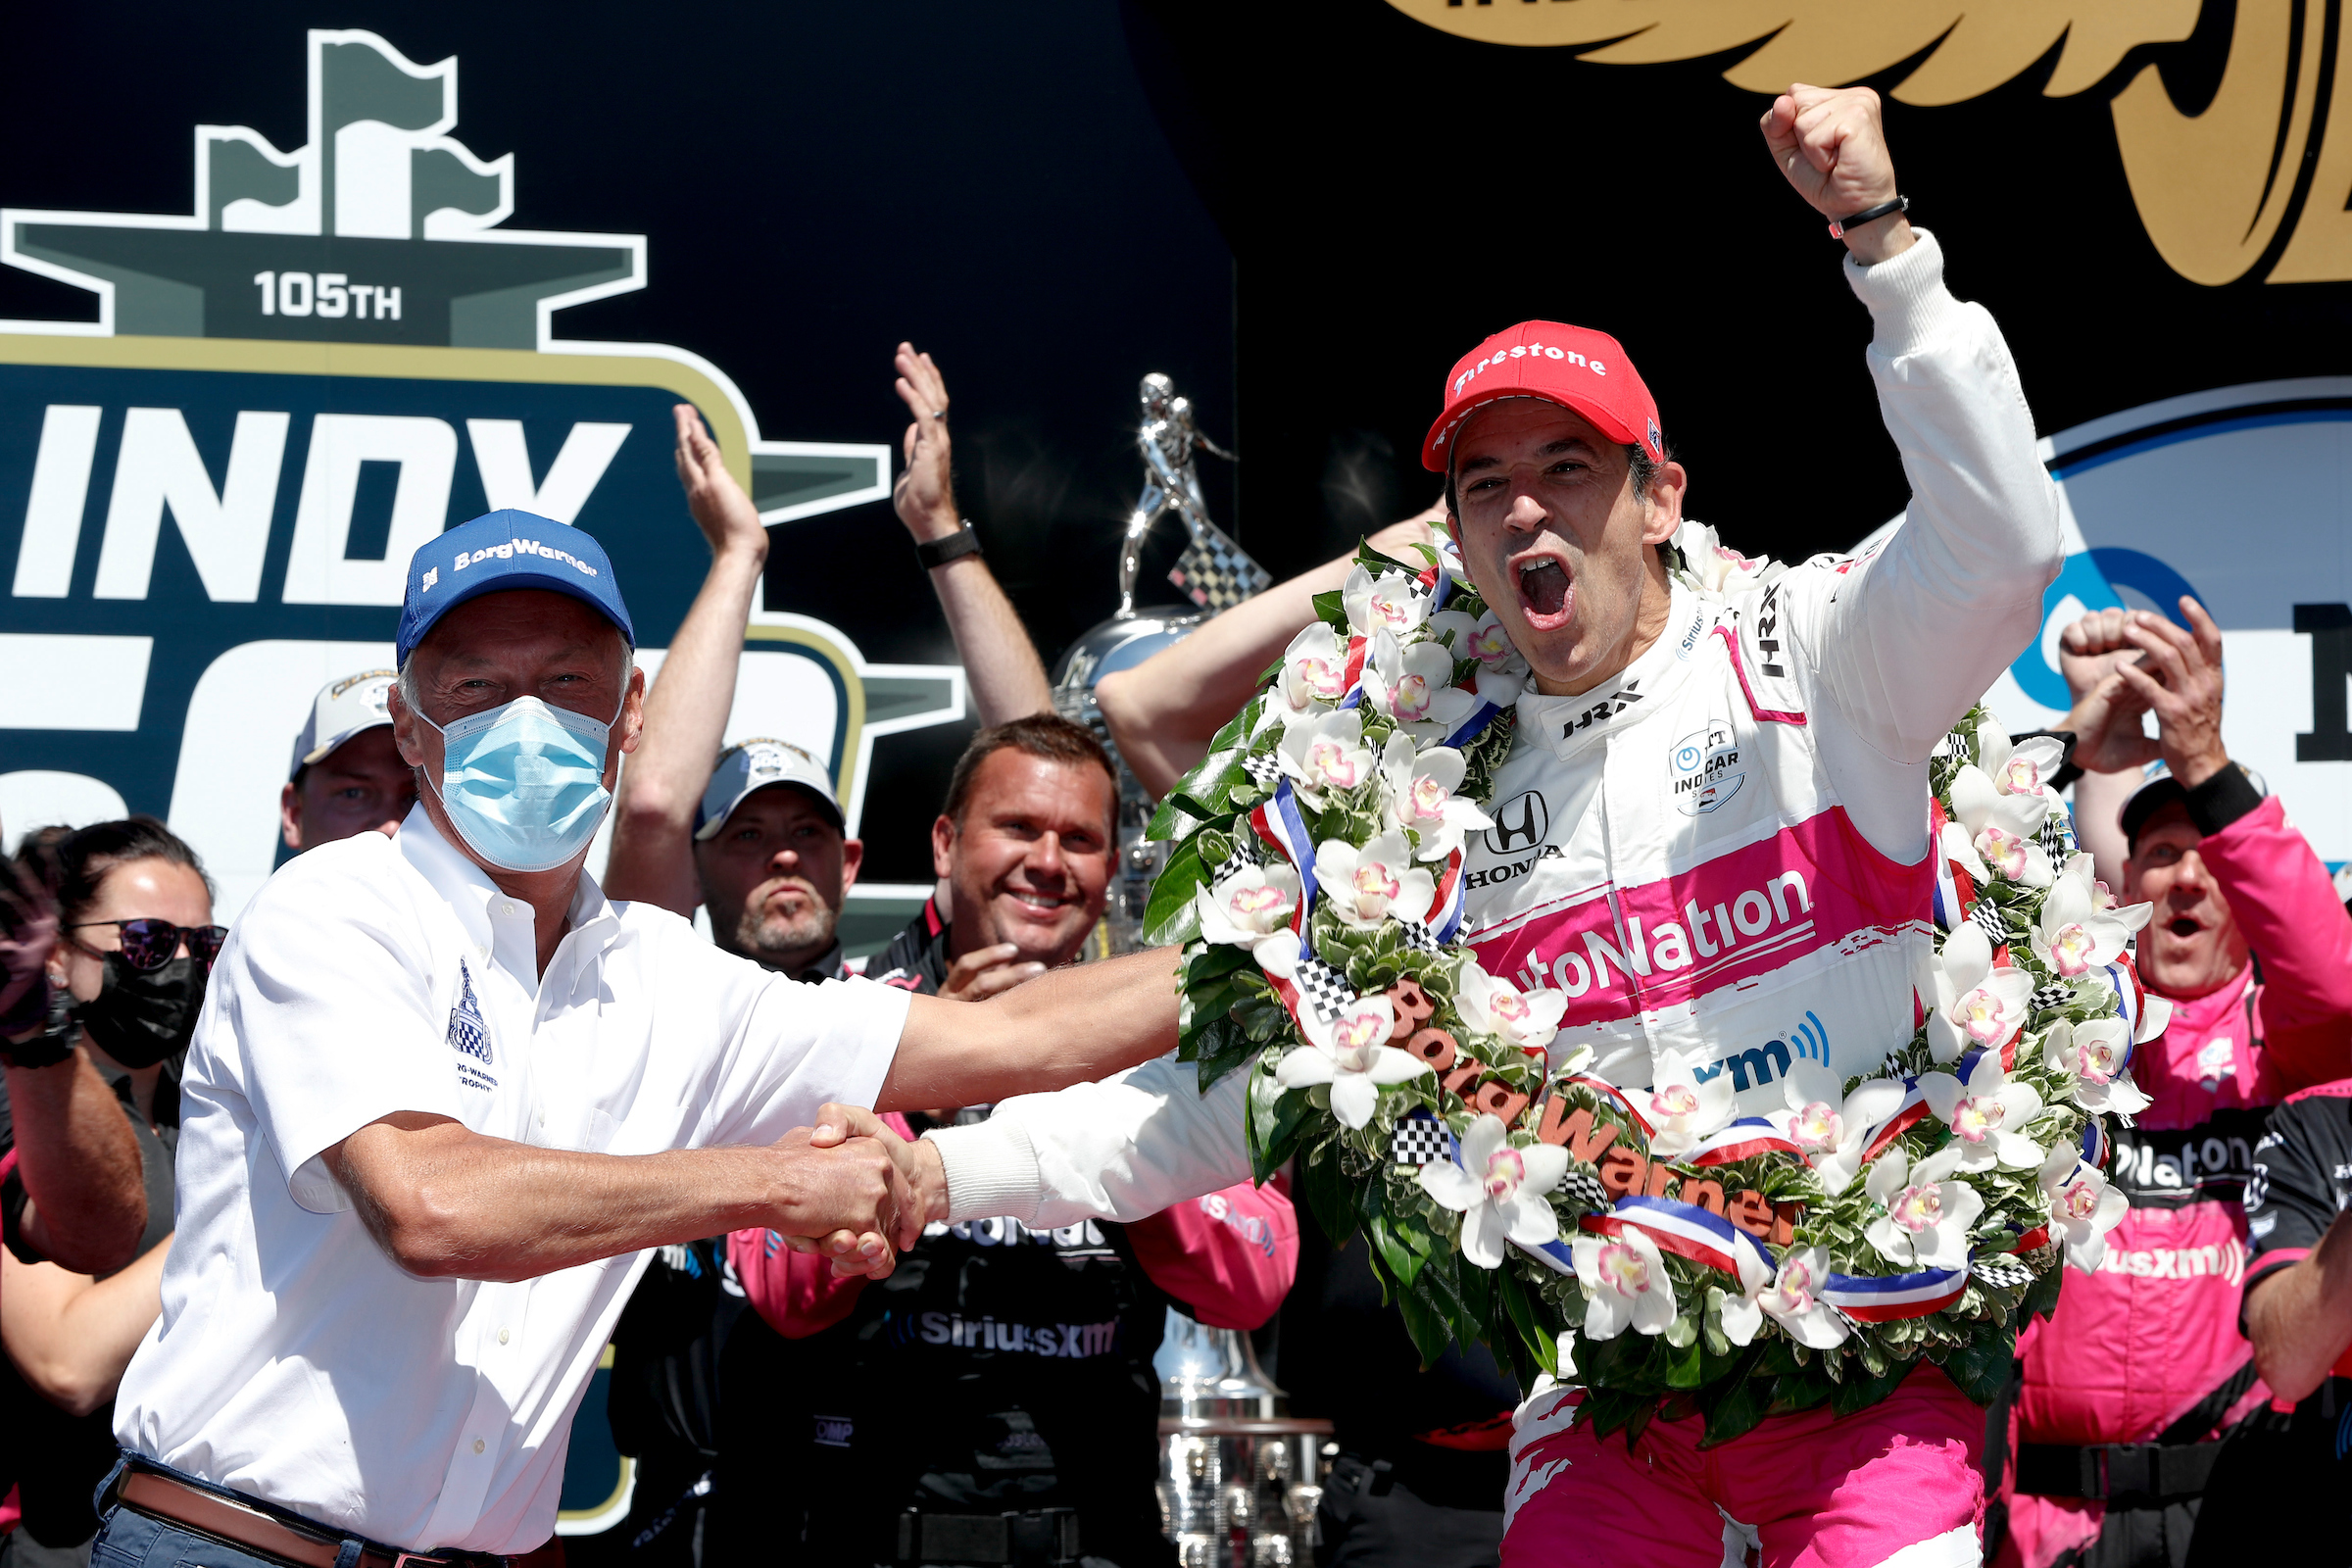 Man in blue hat shakes hand of man in pink hat with celebratory wreath with crowd in background